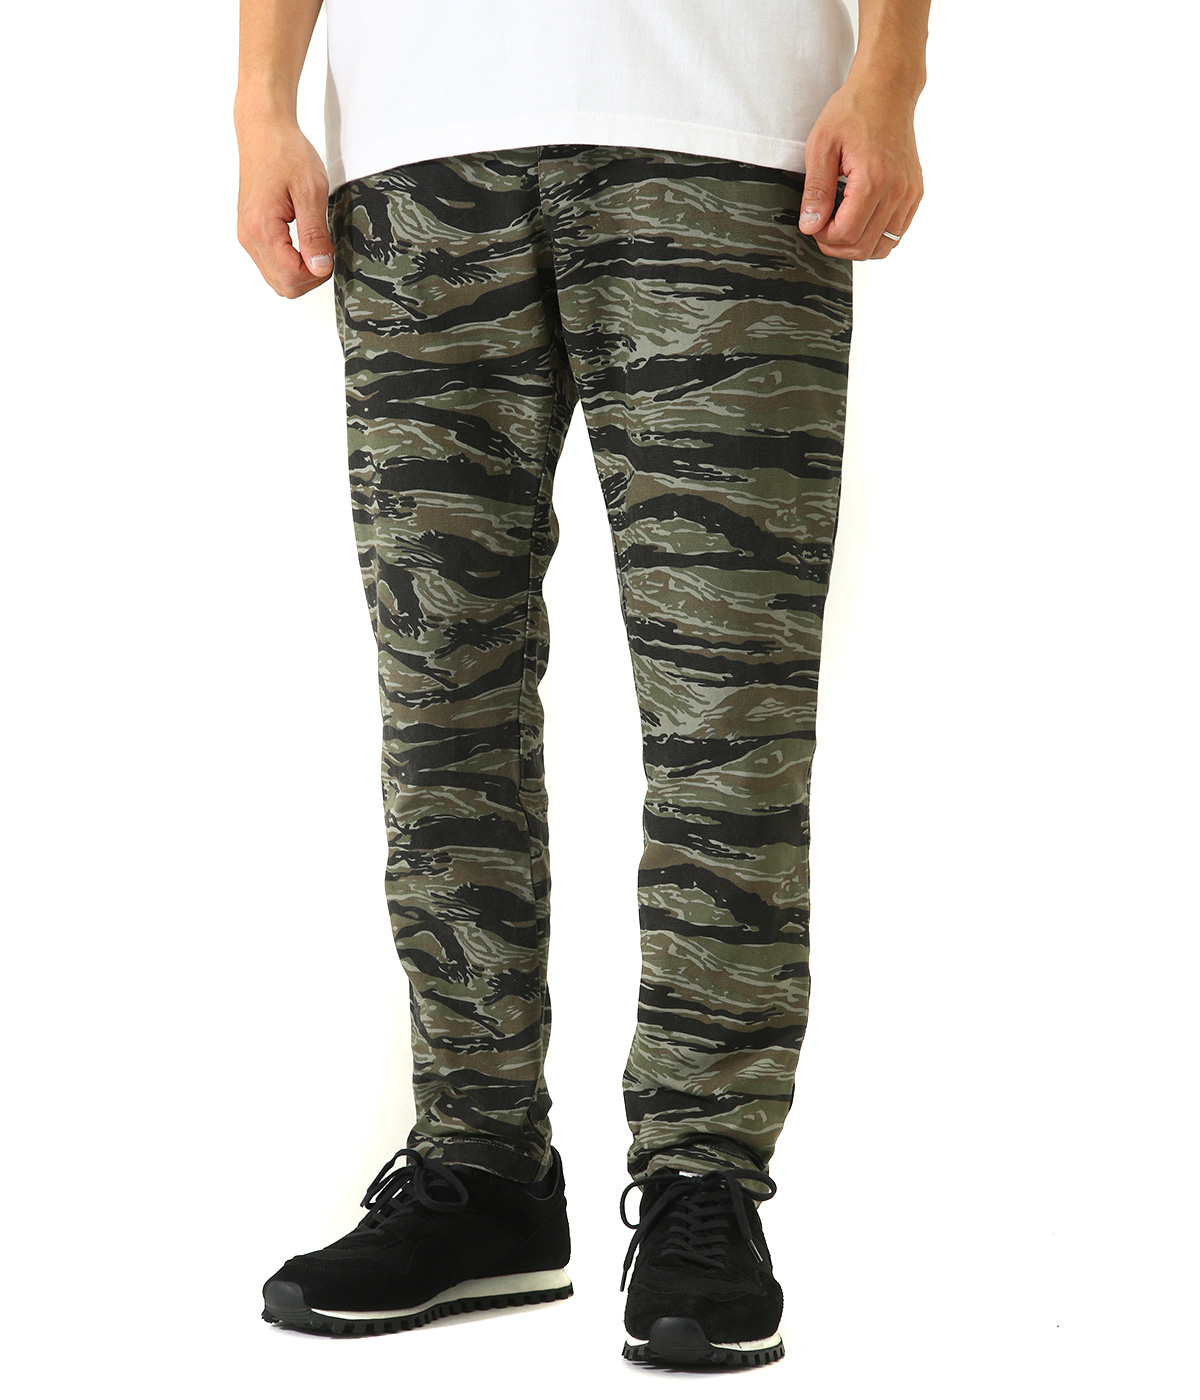 TIGER CAMO WIND-STOPPER PANTS